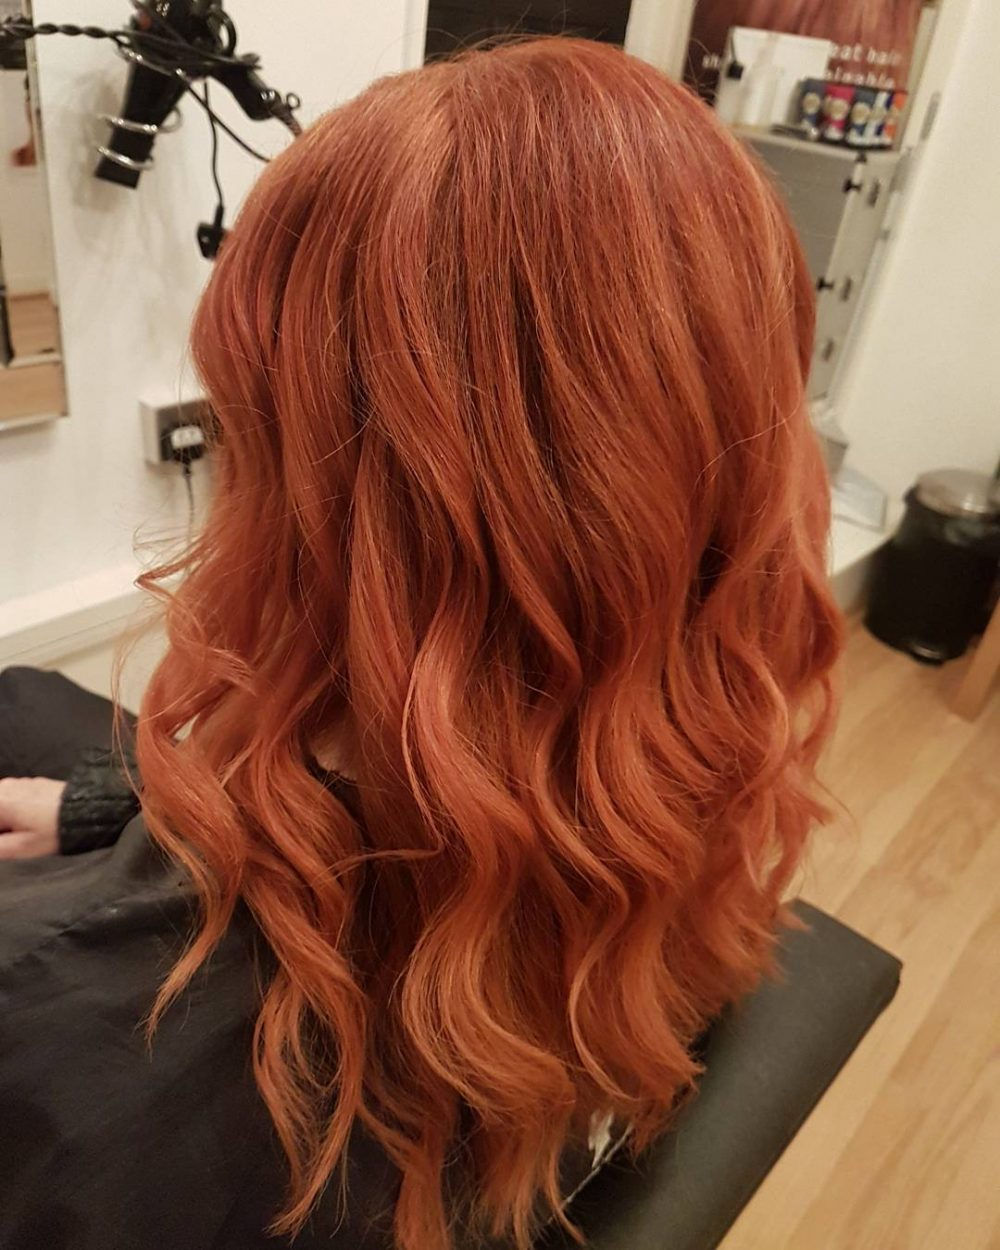 Vibrant and elegant waves with a red hair color